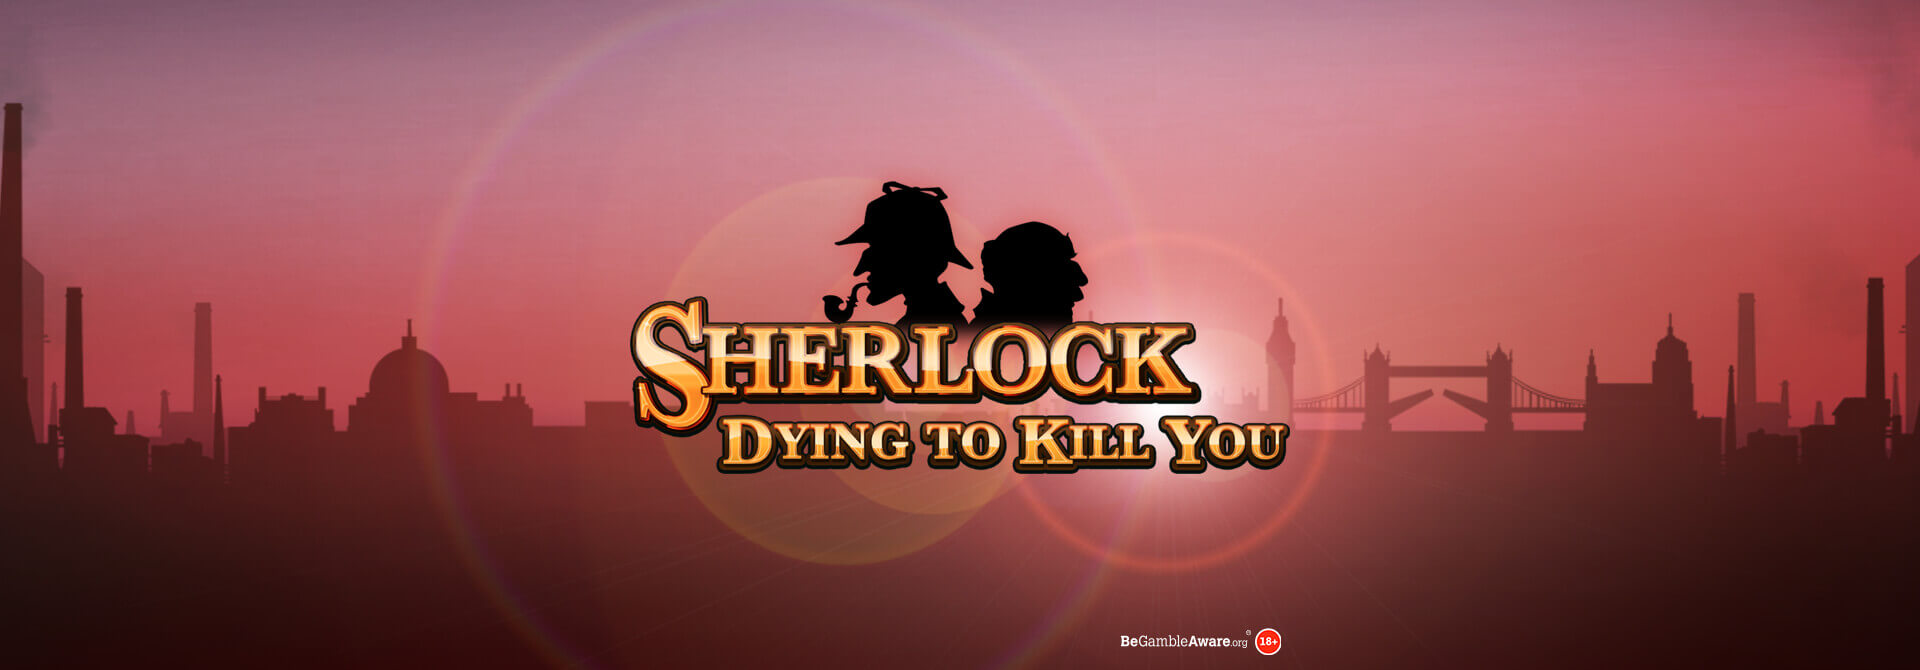 NEW GAME ALERT! Sherlock: Dying To Kill You